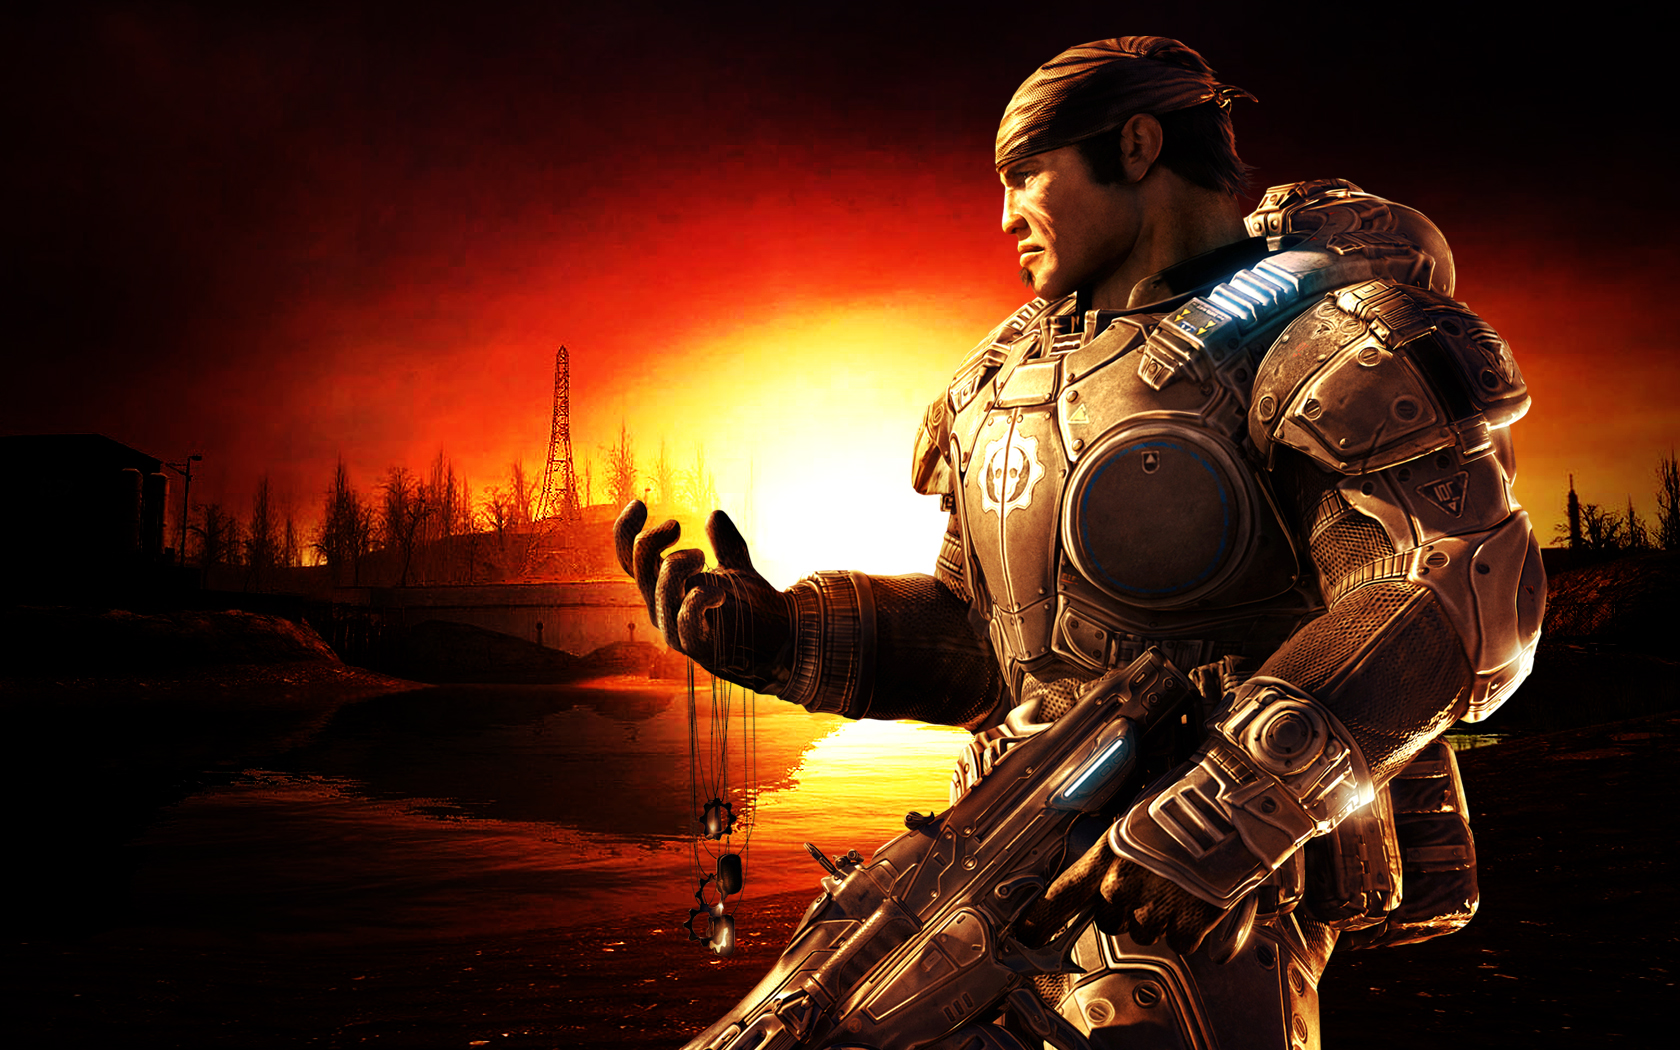 3d Wallpaper For Desktop Icon Gears Of War Wallpapers Hd Desktop Wallpapers 4k Hd